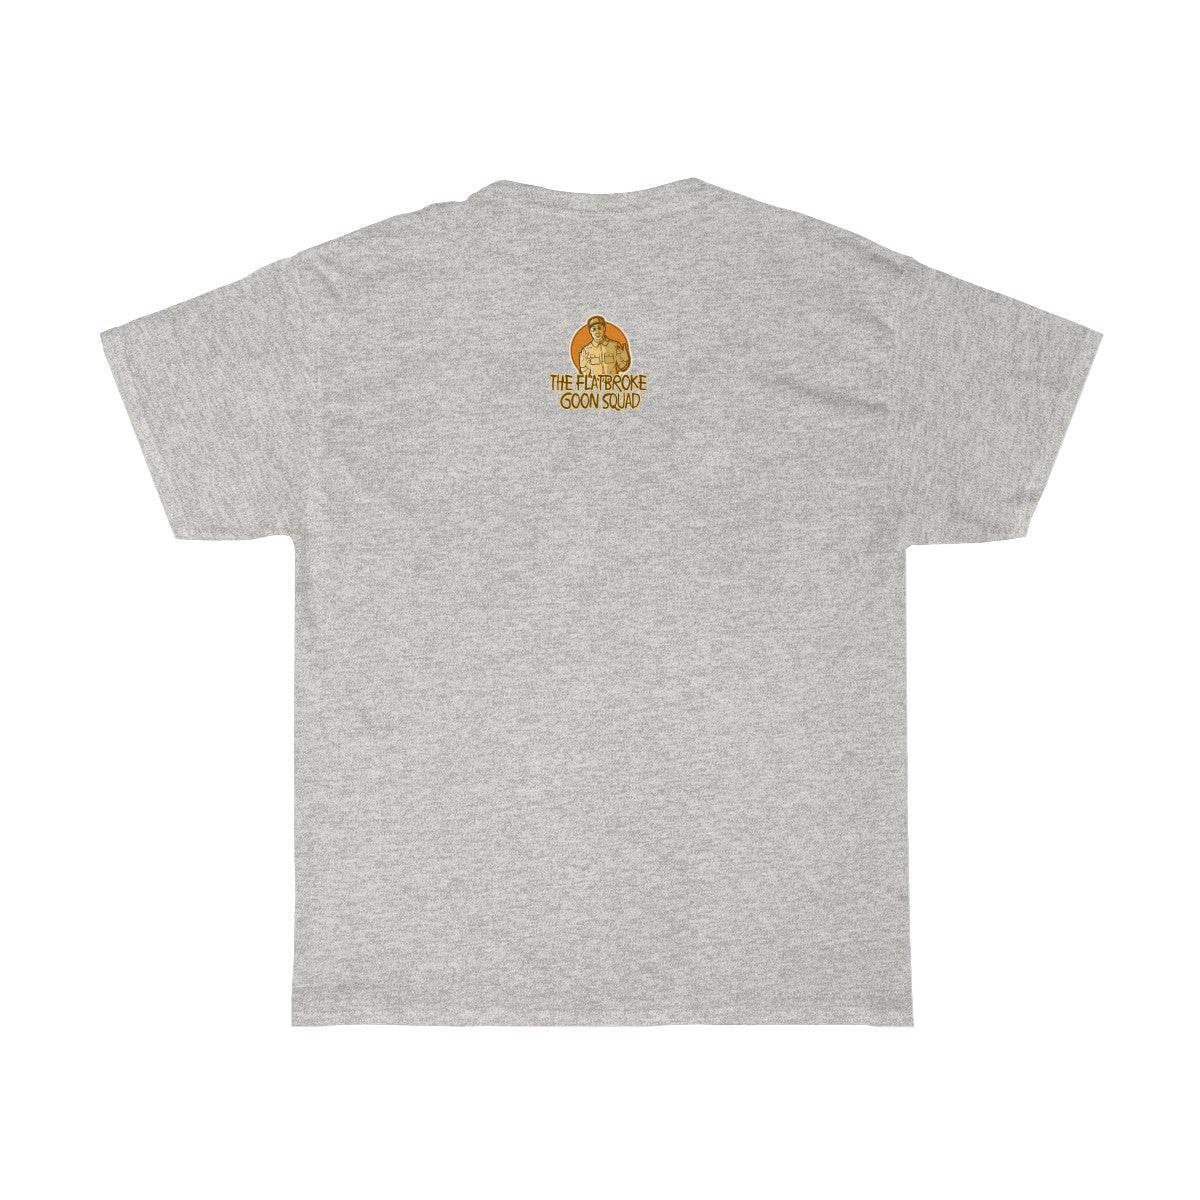 TDE 0345 Unisex Heavy Cotton Tee